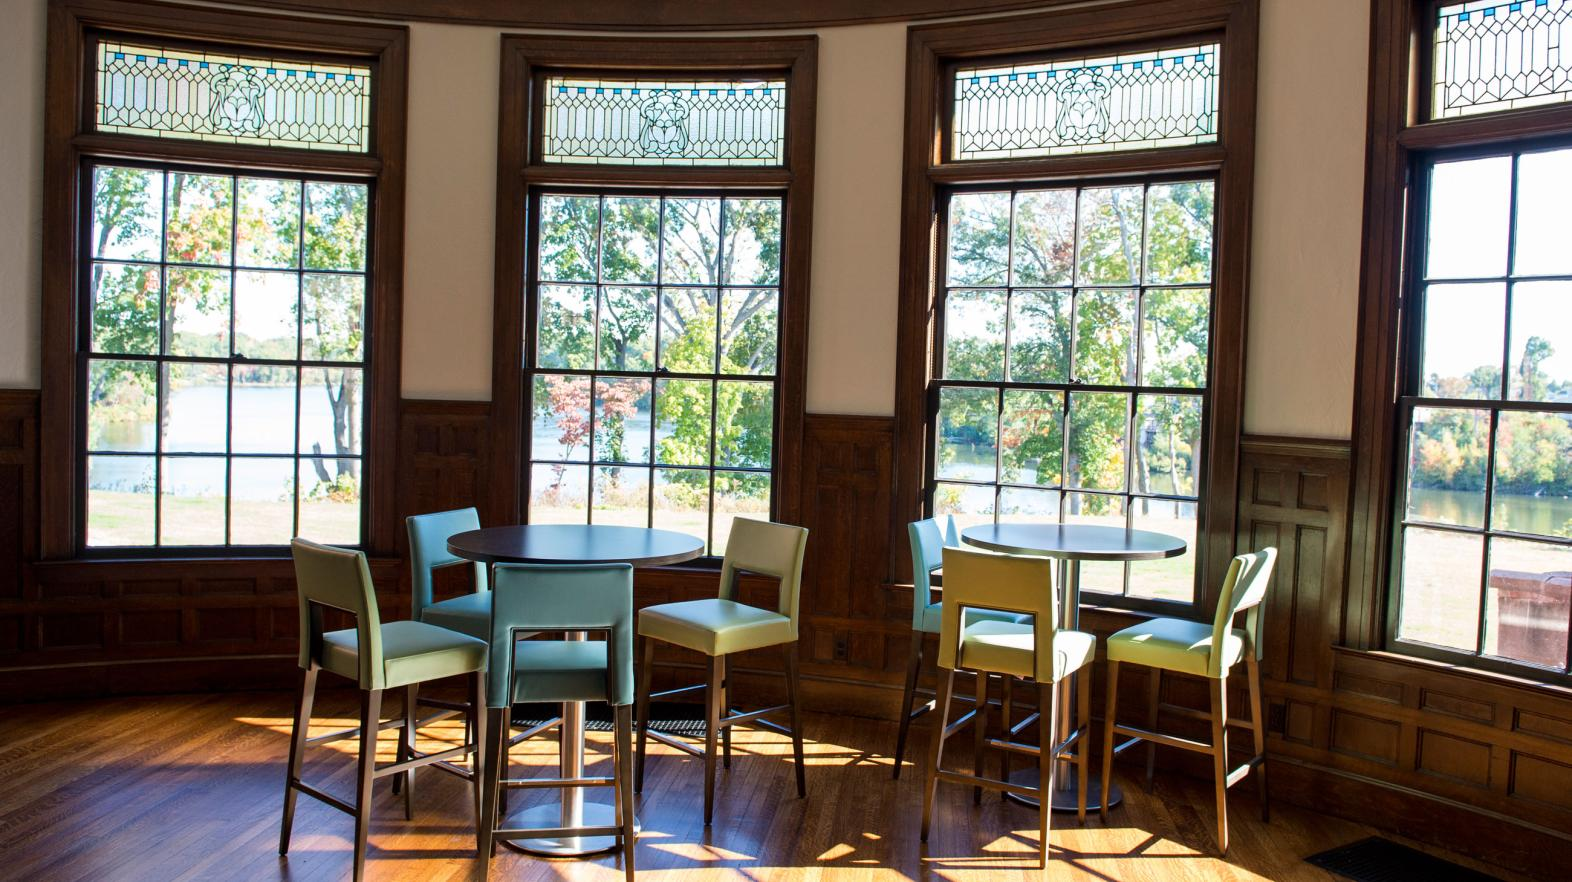 There is seating space for students to study or hang out in Carlisle Foyer in Alumni Hall.